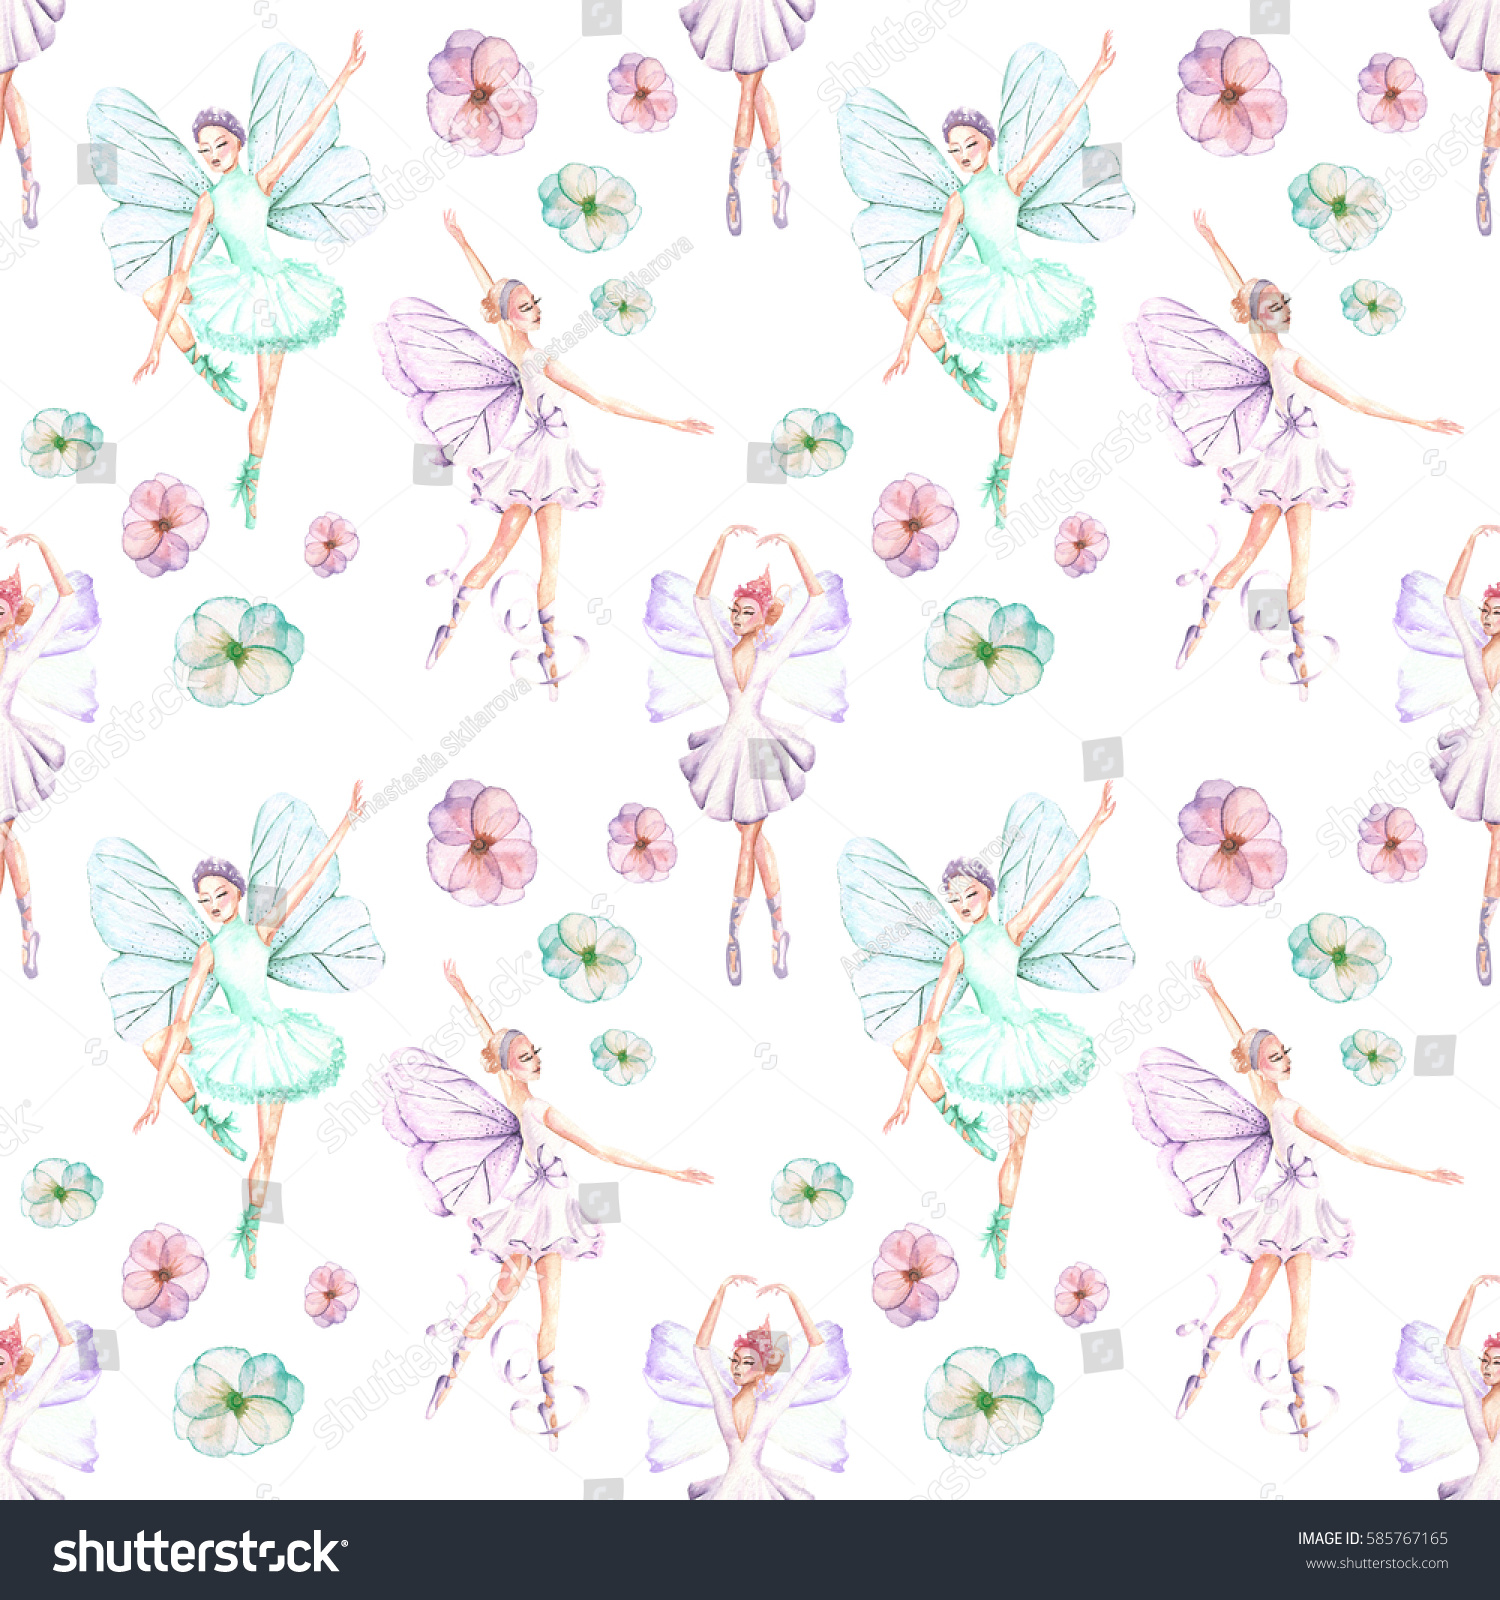 Seamless pattern of ballet dancers royalty free stock photography - Seamless Pattern With Watercolor Ballet Dancers With Butterfly Wings And Flowers Hand Drawn Isolated On